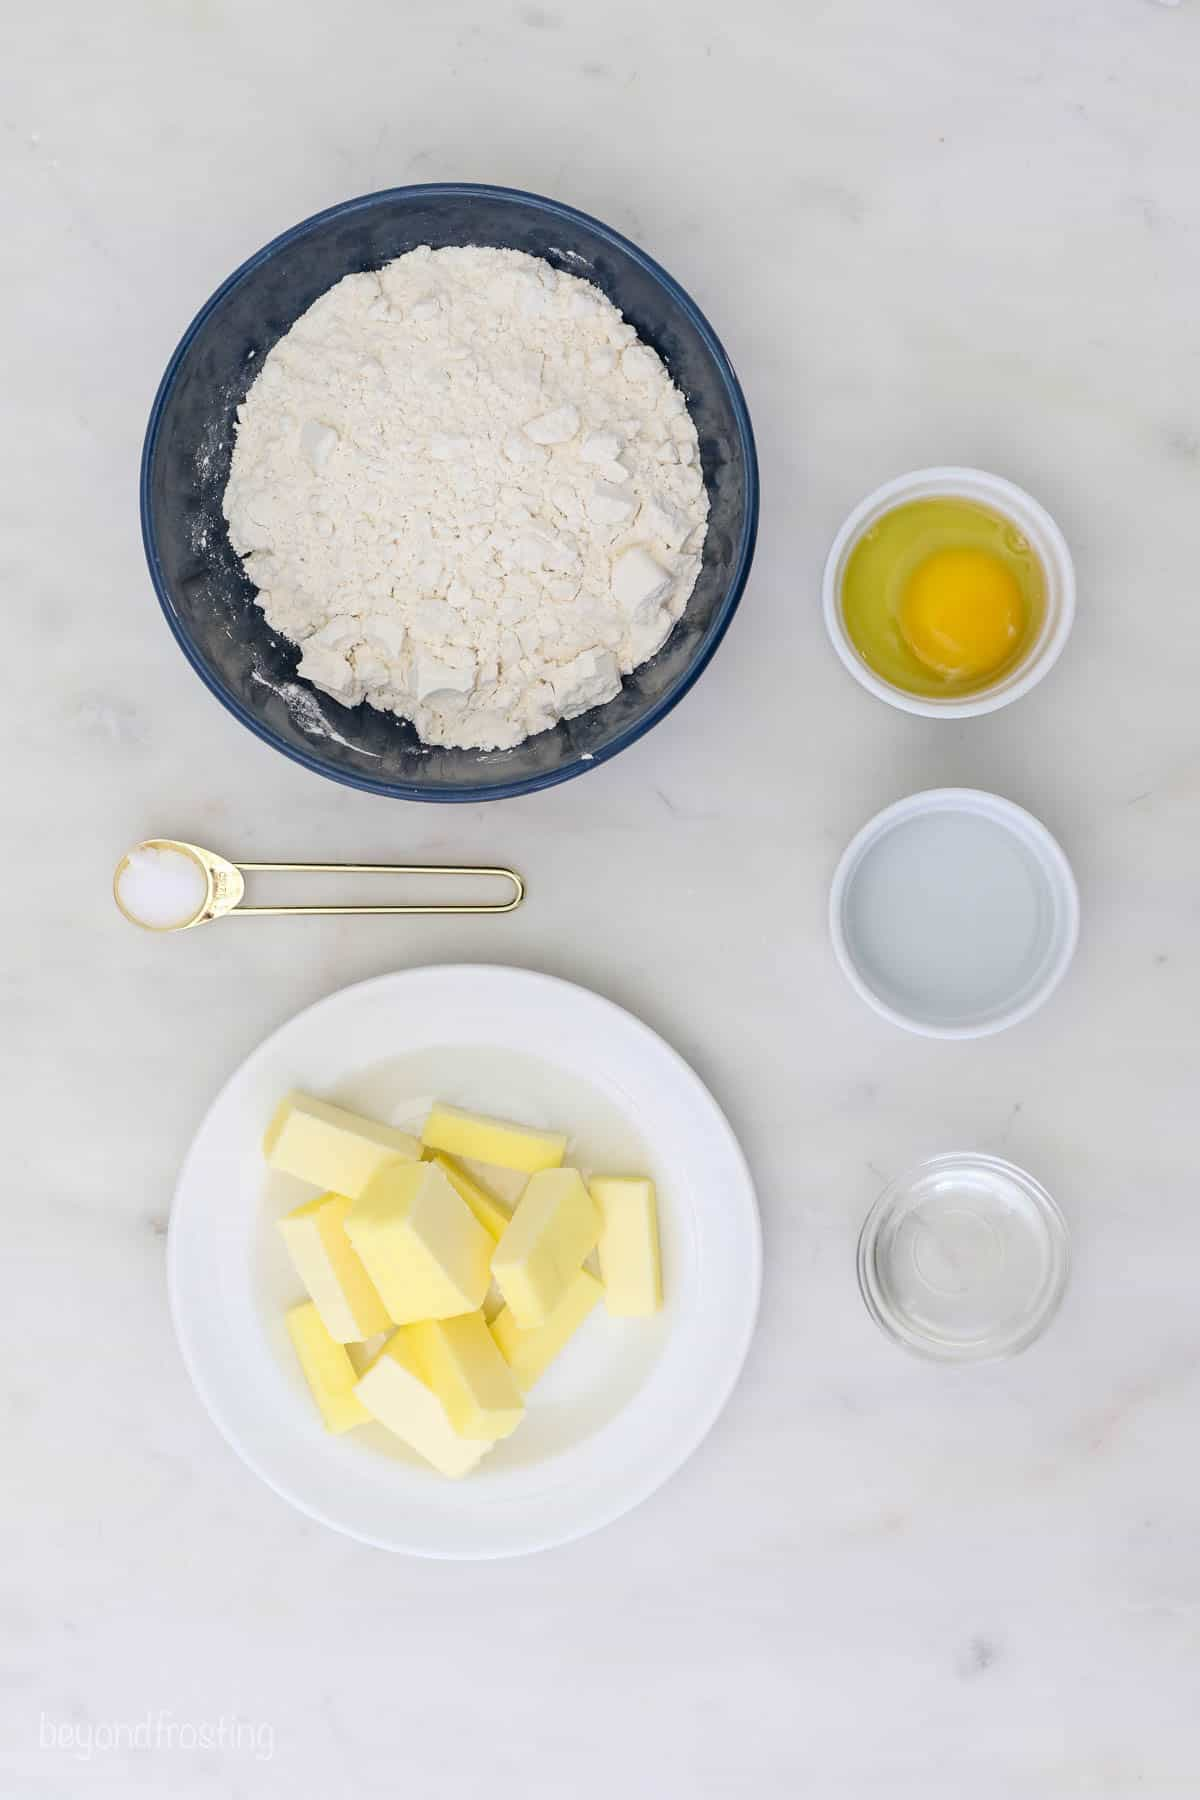 A bowl of flour, a plate of cold butter, a cracked egg in a dish and the rest of the dough ingredients arranged on a countertop